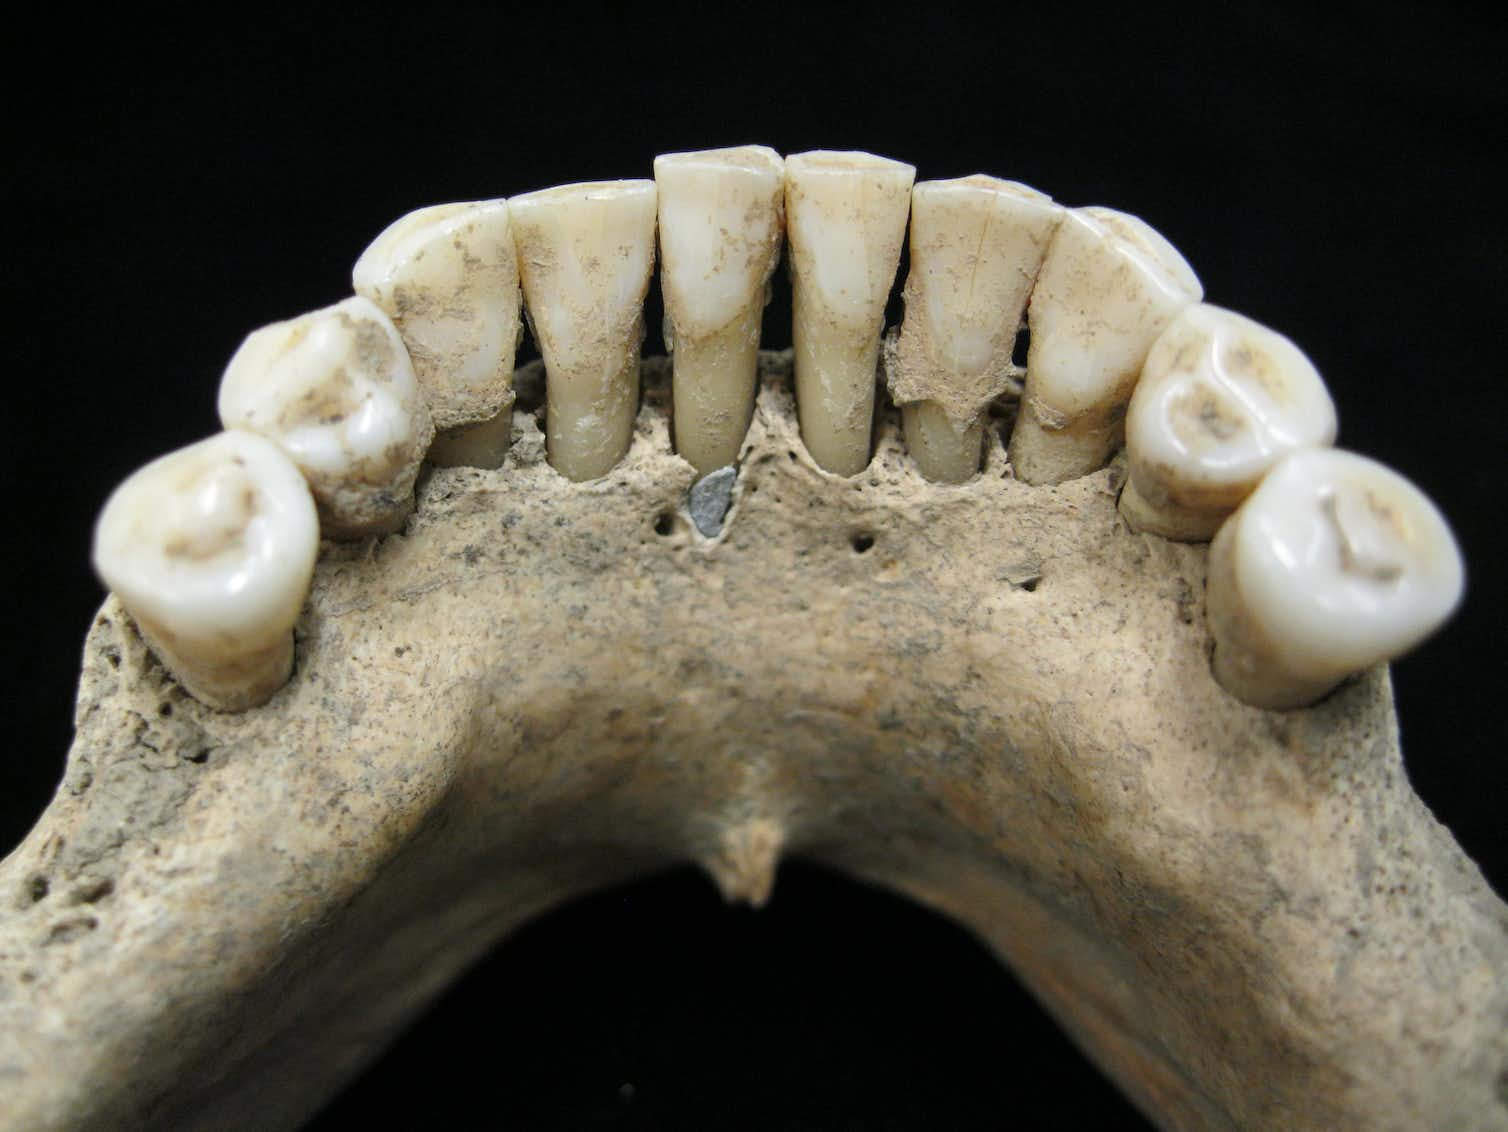 The tartar of the female individual known as B78 can be seen deposited on her teeth. Photo credit: Tina Warinner, Author provided